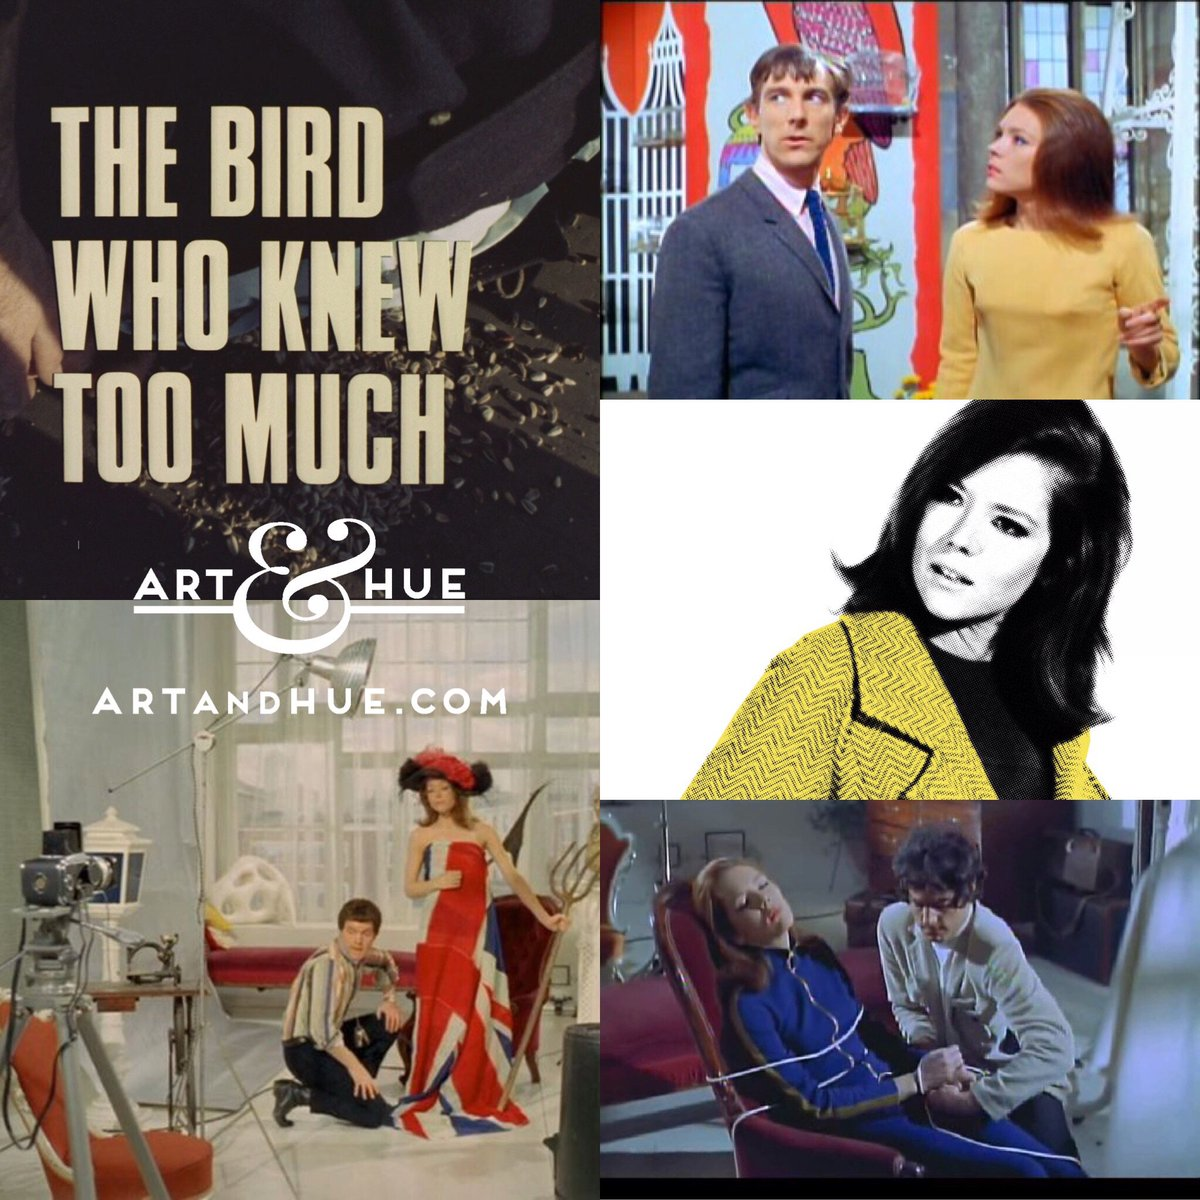 """On this day in 1967, The Avengers episode """"The Bird Who Knew Too Much"""" aired in on British TV for the 1st time.   http://artandhue.com/theavengers   #dianarigg #mrspeel #patrickmacnee #johnsteed #MadeAtElstree #OnThisDay #OTD #TheAvengers #chapeaumelonetbottesdecuir #TheBirdWhoKnewTooMuch"""